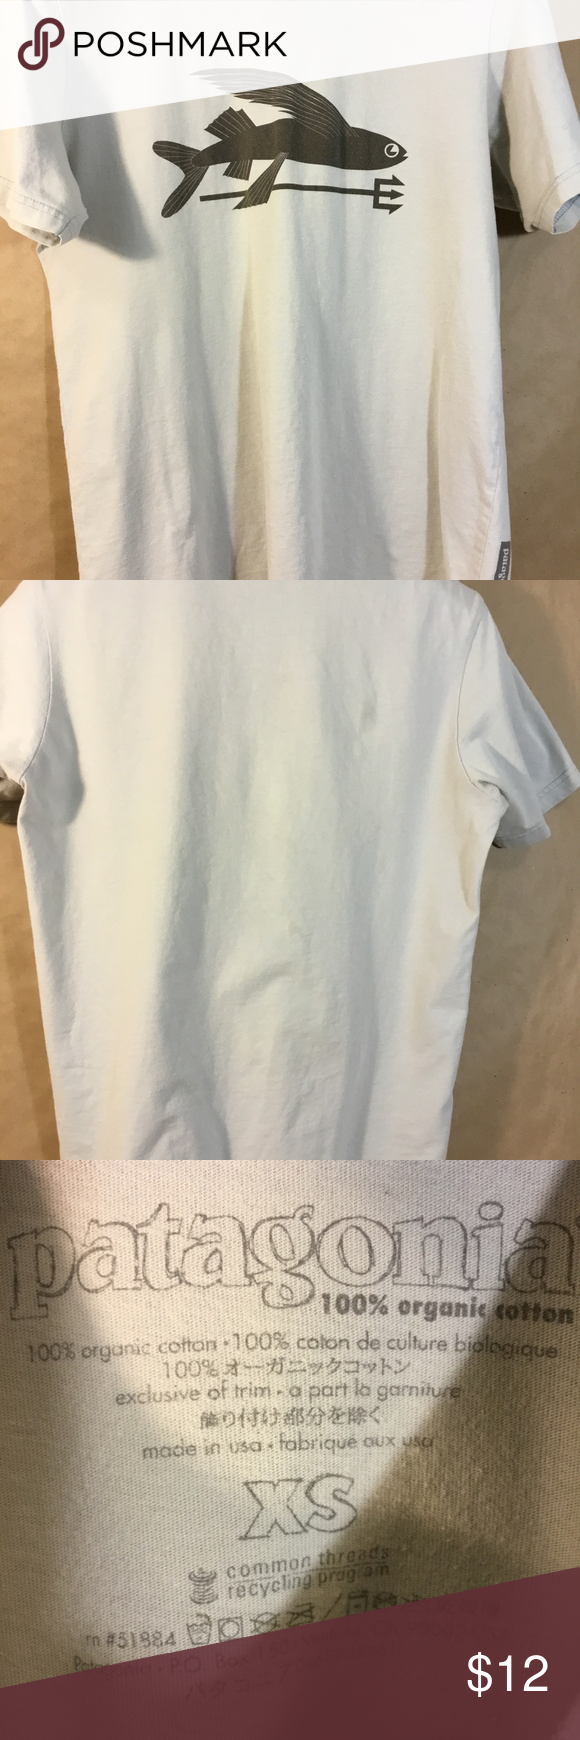 964af8a9 Women's Patagonia Short Sleeve Tee Shirt Gray With Women's Patagonia Short  Sleeve Tee Shirt Gray With Fish Graphic Preowned Size XS Preowned in pretty  good ...